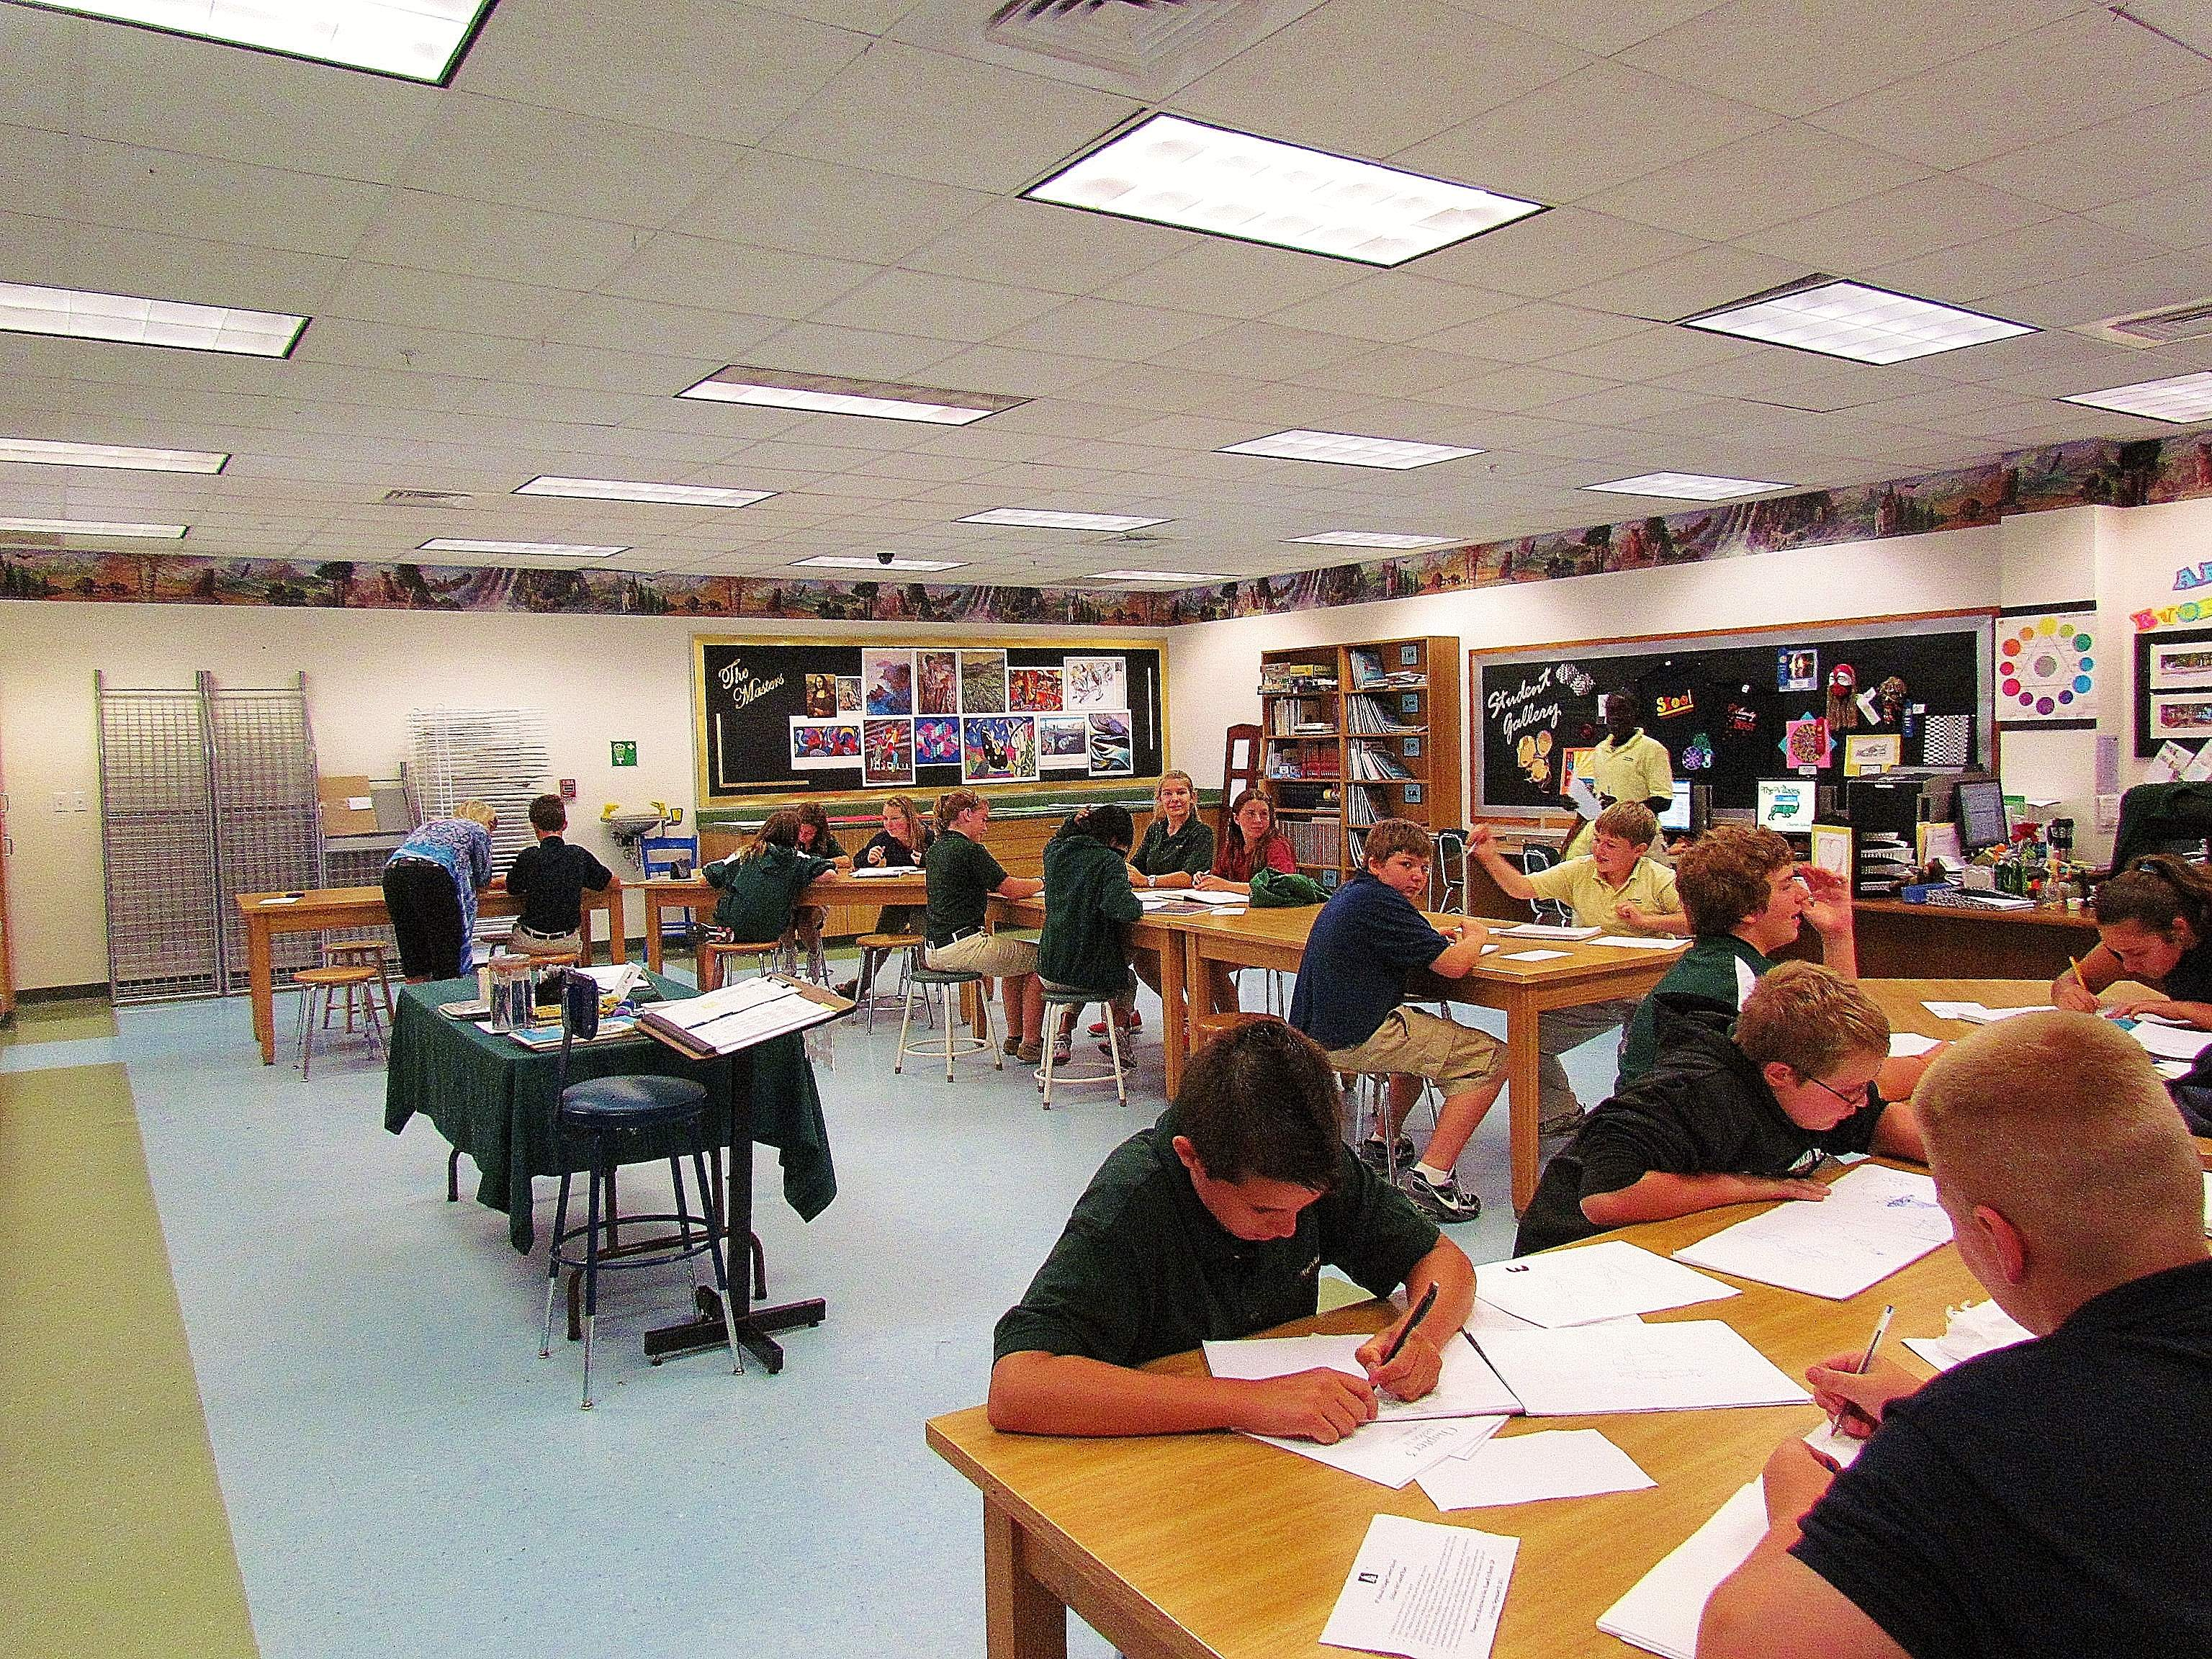 Middle School image 24 of 37